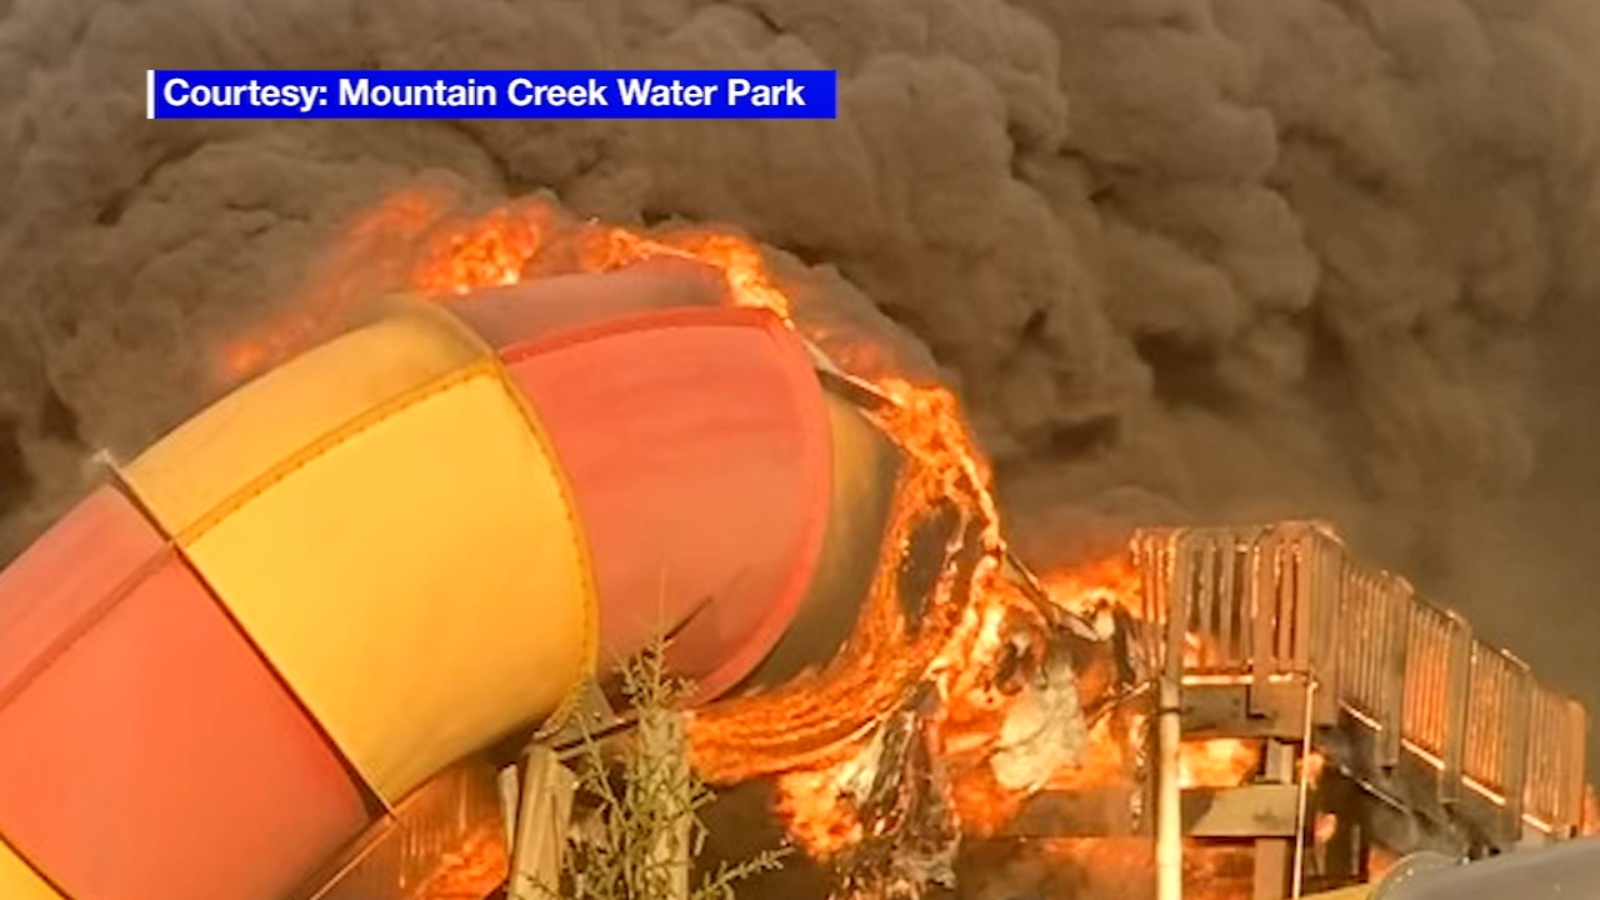 'High Anxiety' waterslide goes up in flames at Mountain Creek Water Park in Vernon, New Jersey